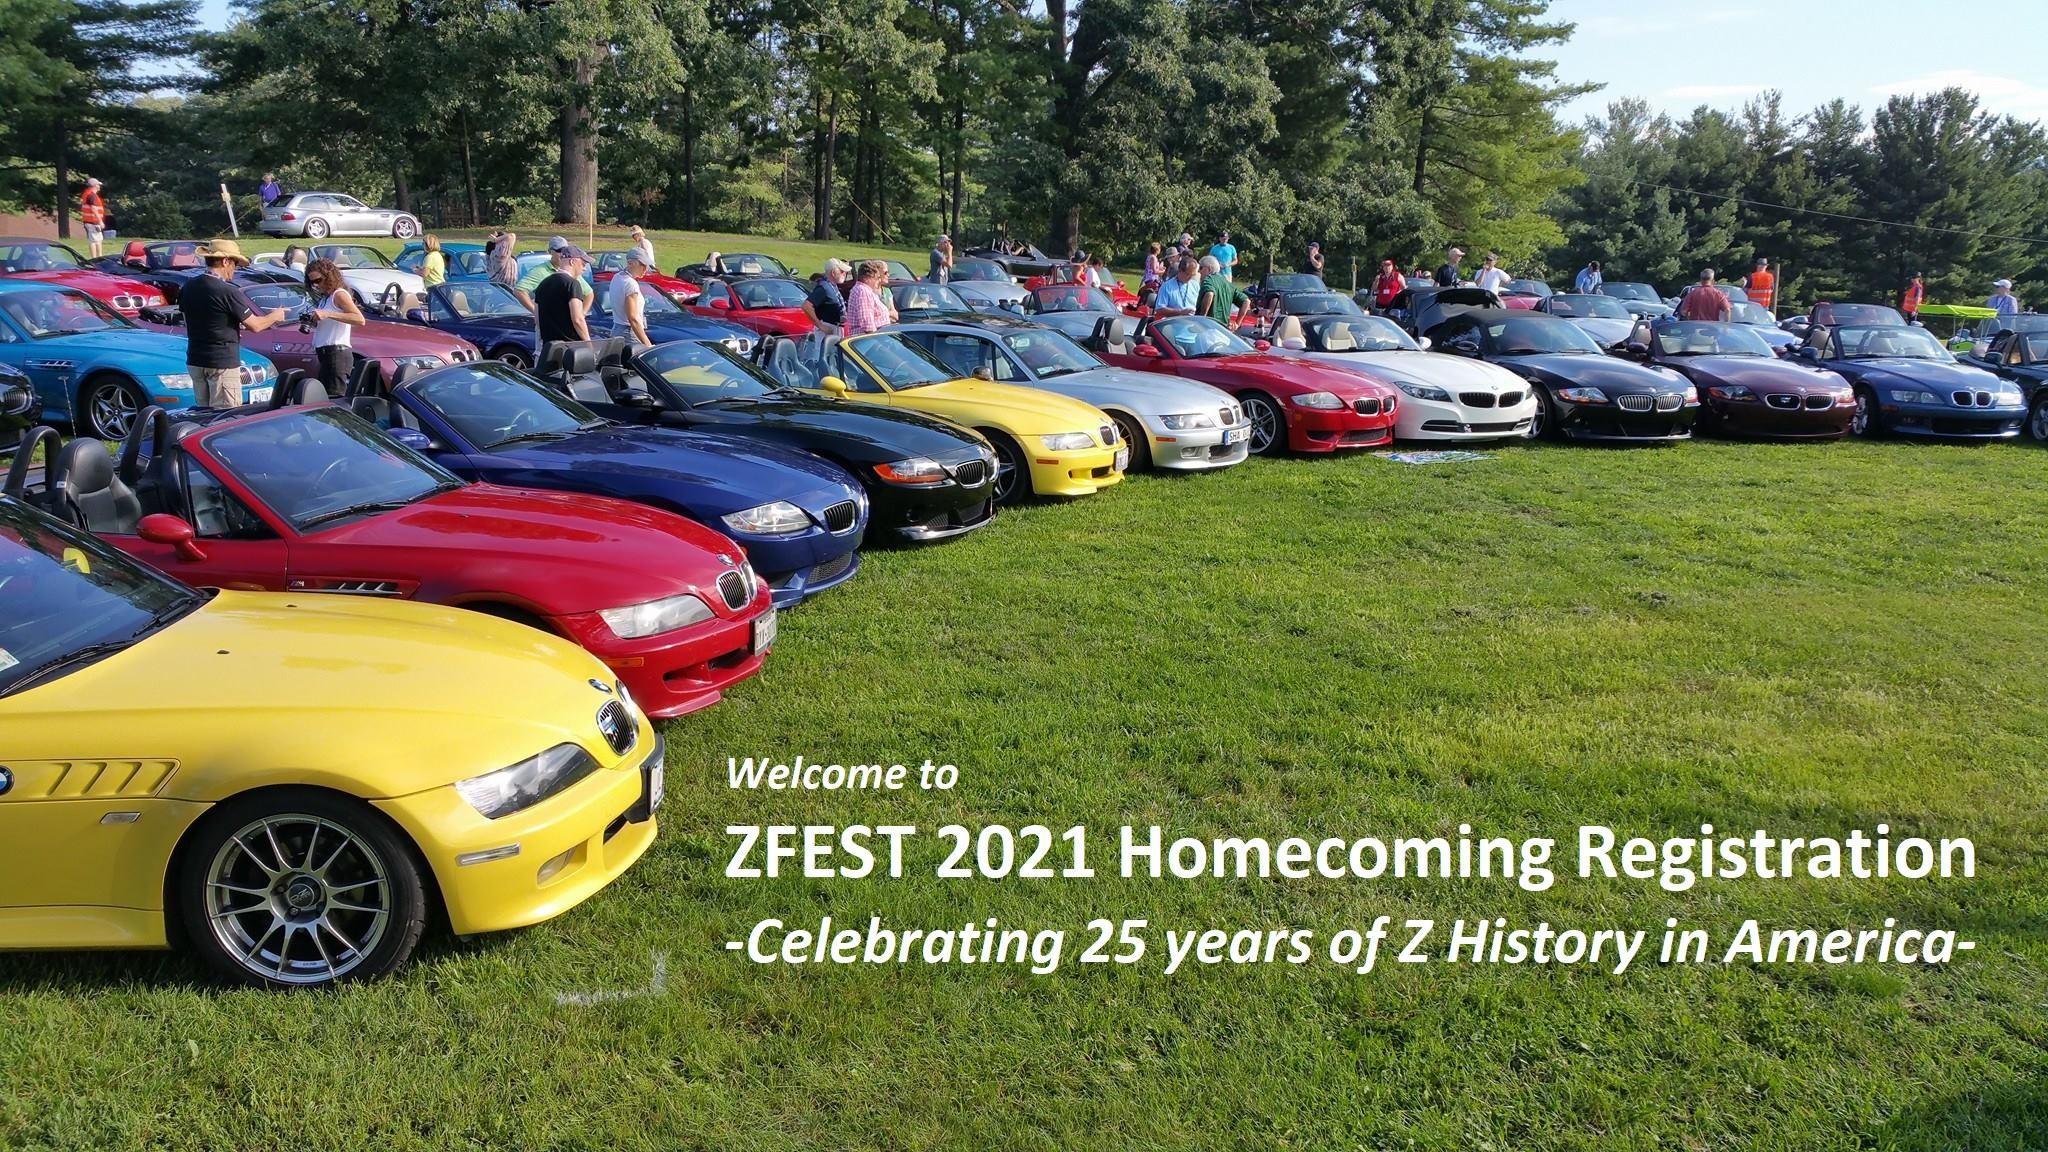 Welcome to ZFEST 2021 Homecoming Registration!